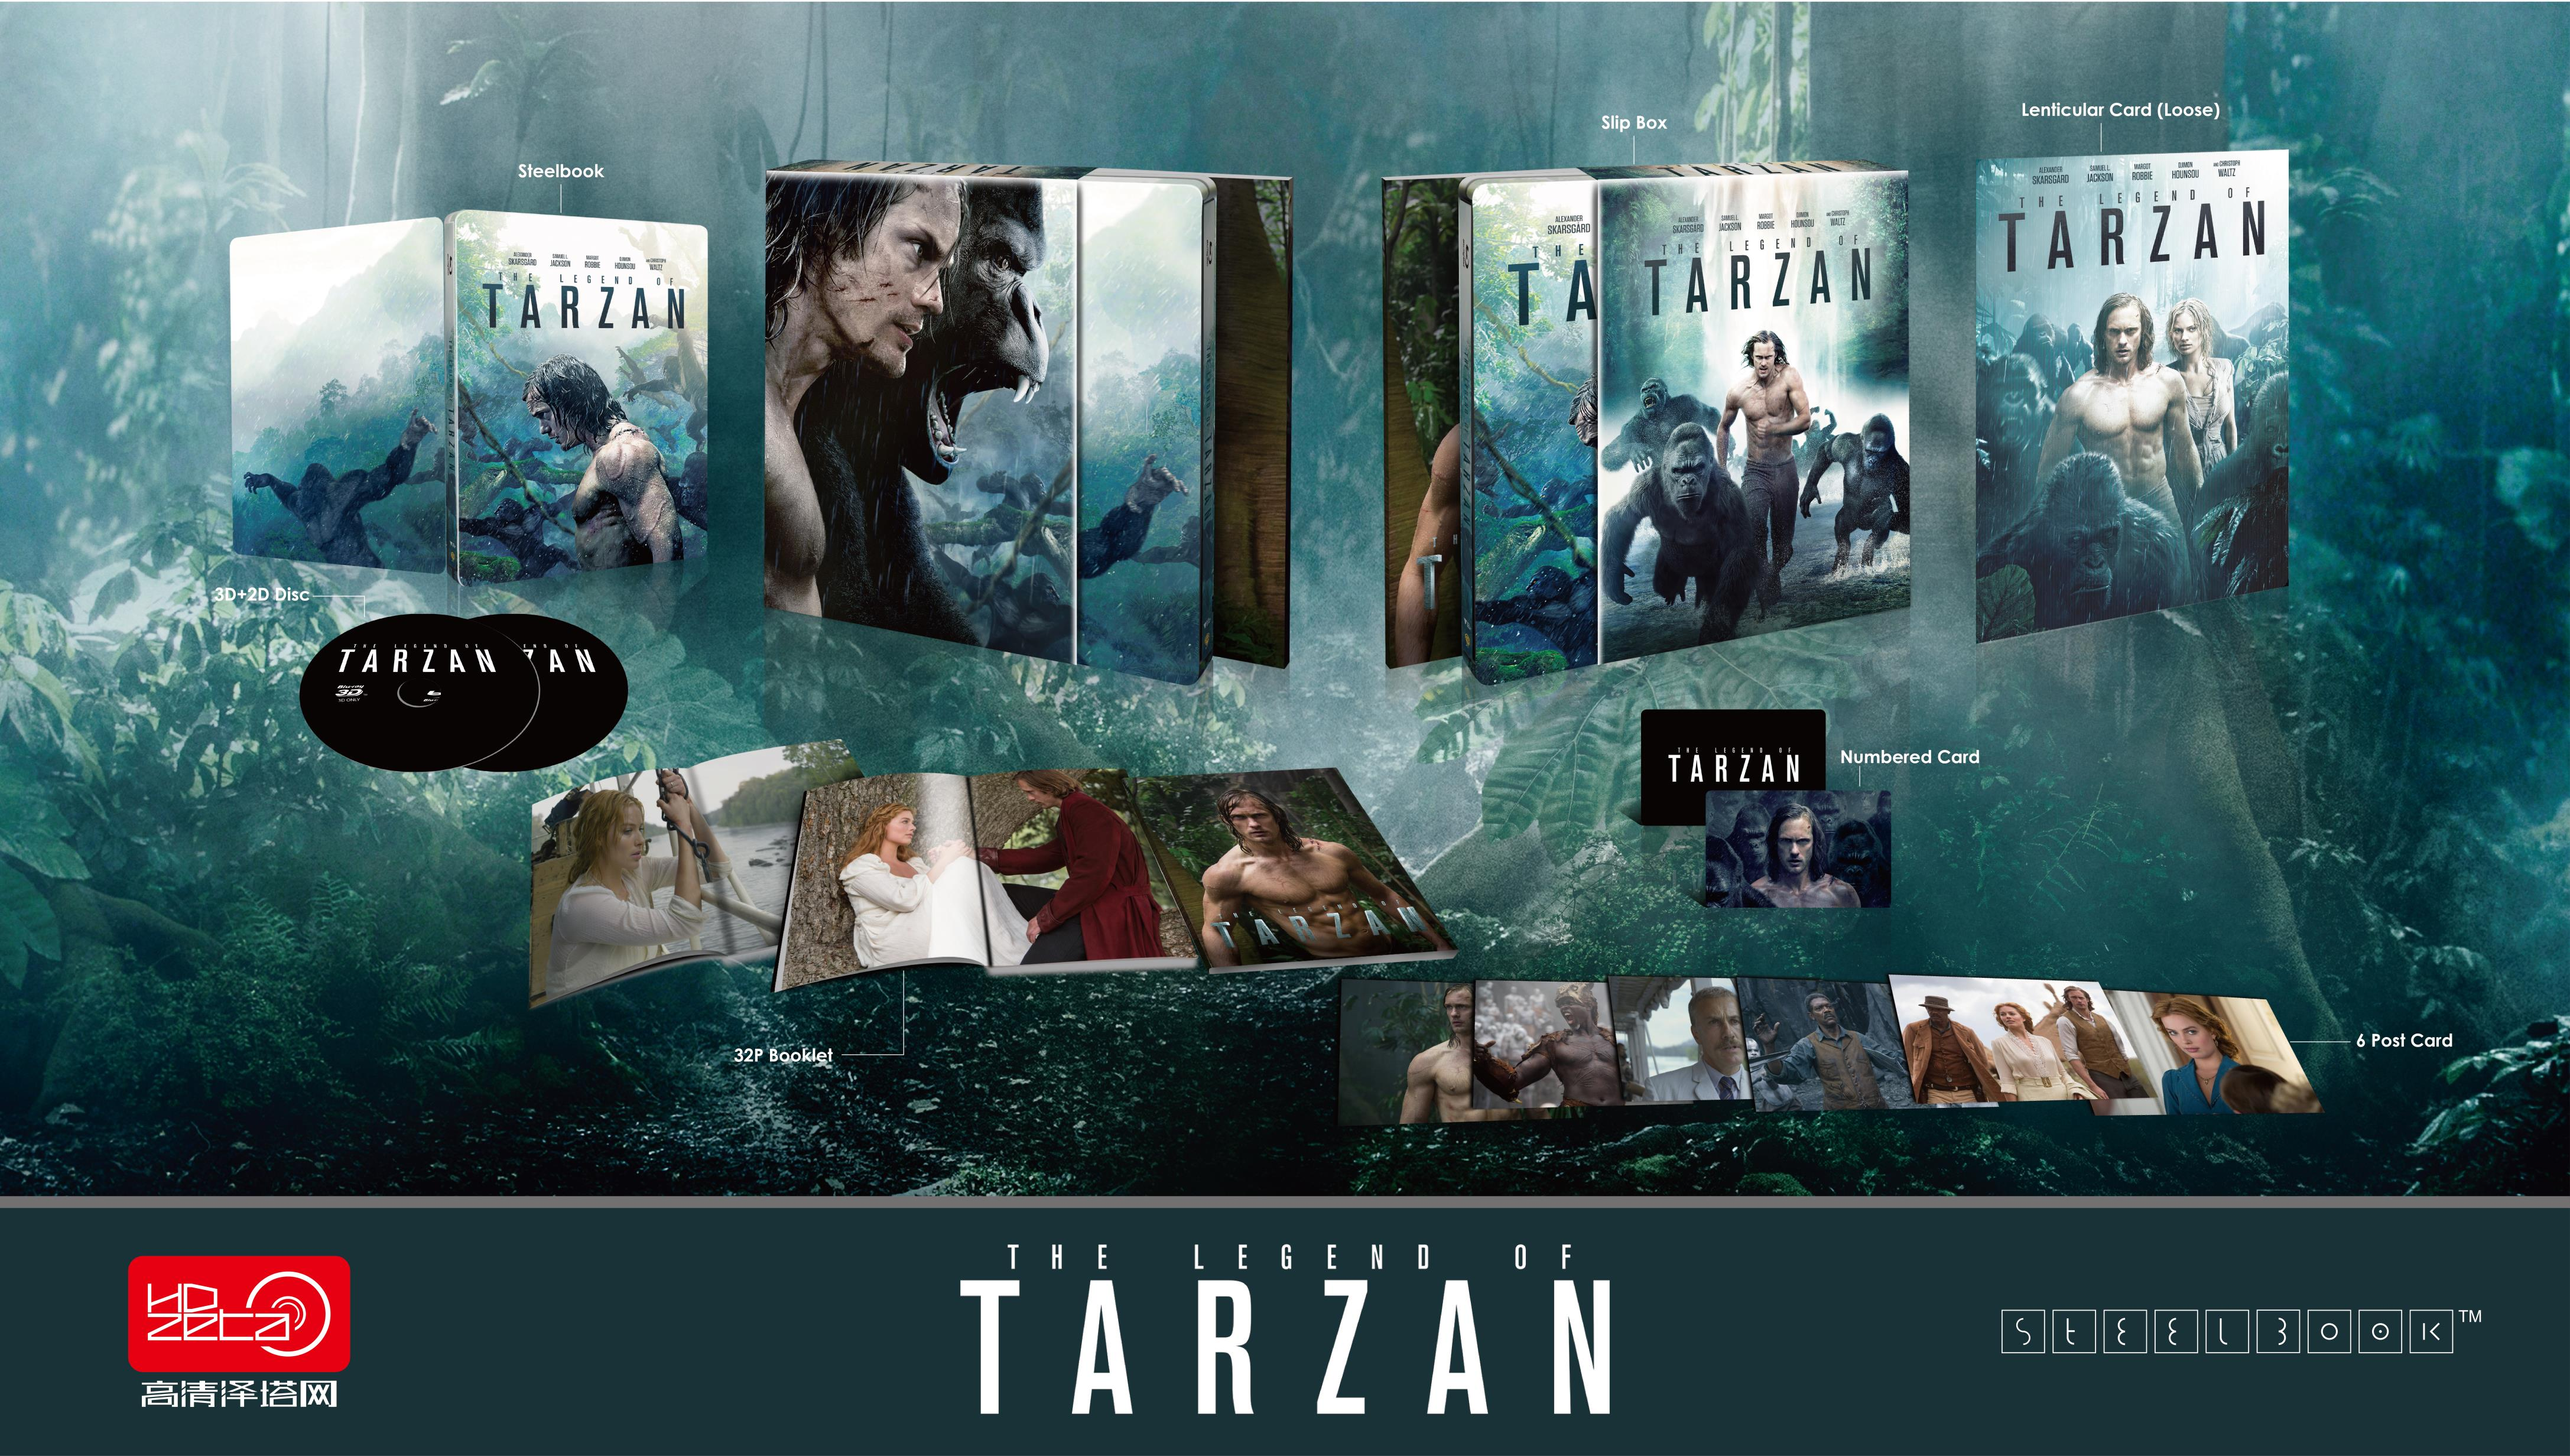 The Legend of Tarzan HDzeta Special Edition